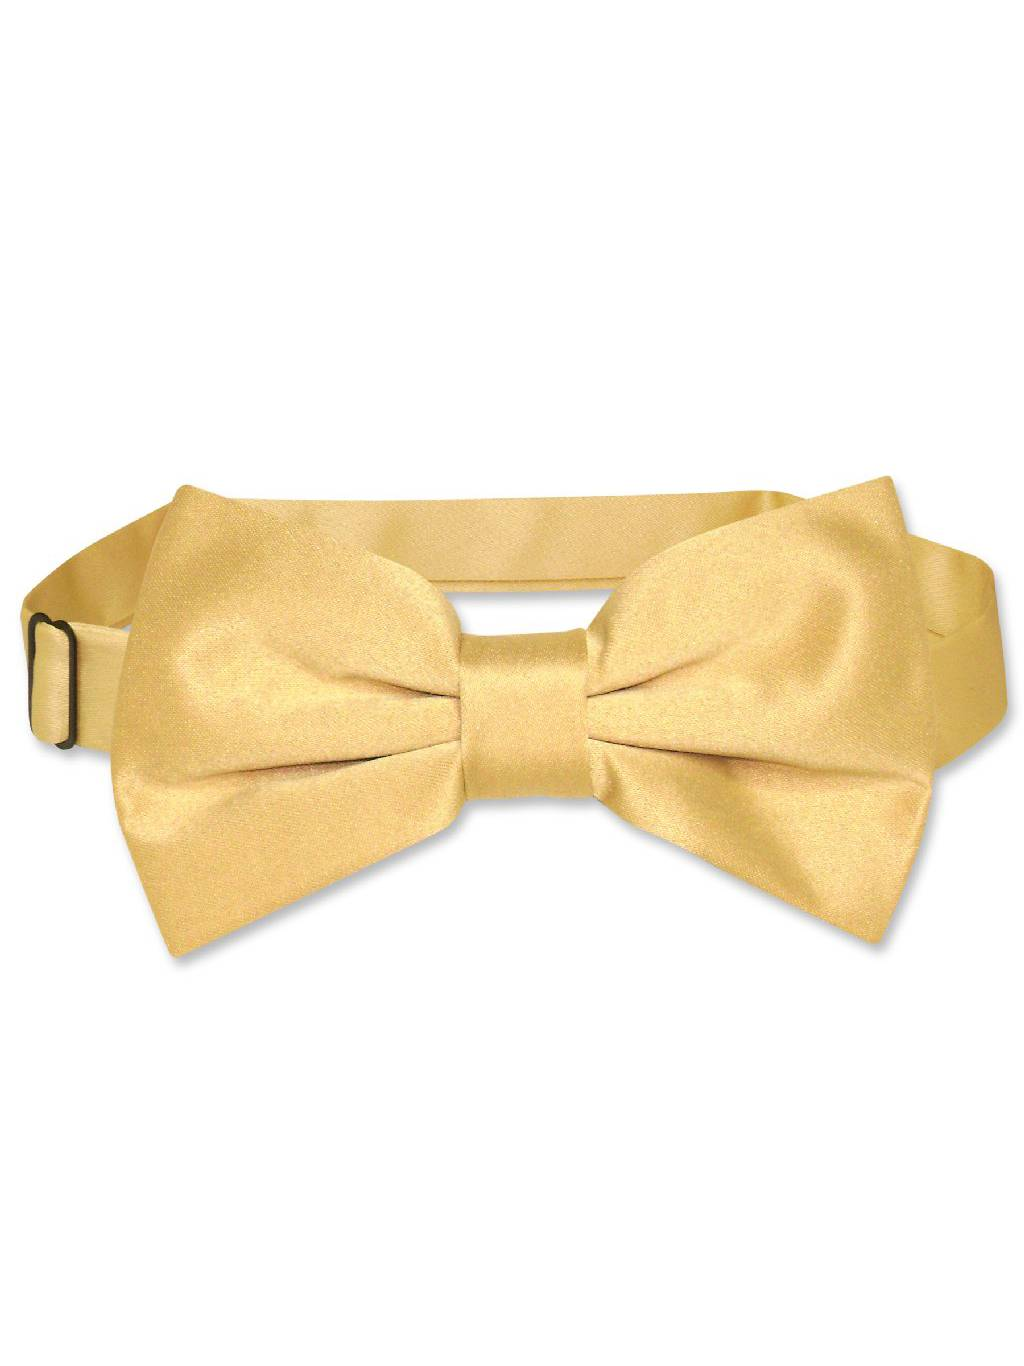 Vesuvio Napoli BOWTIE Solid GOLD Color Men's Bow Tie for Tuxedo or Suit